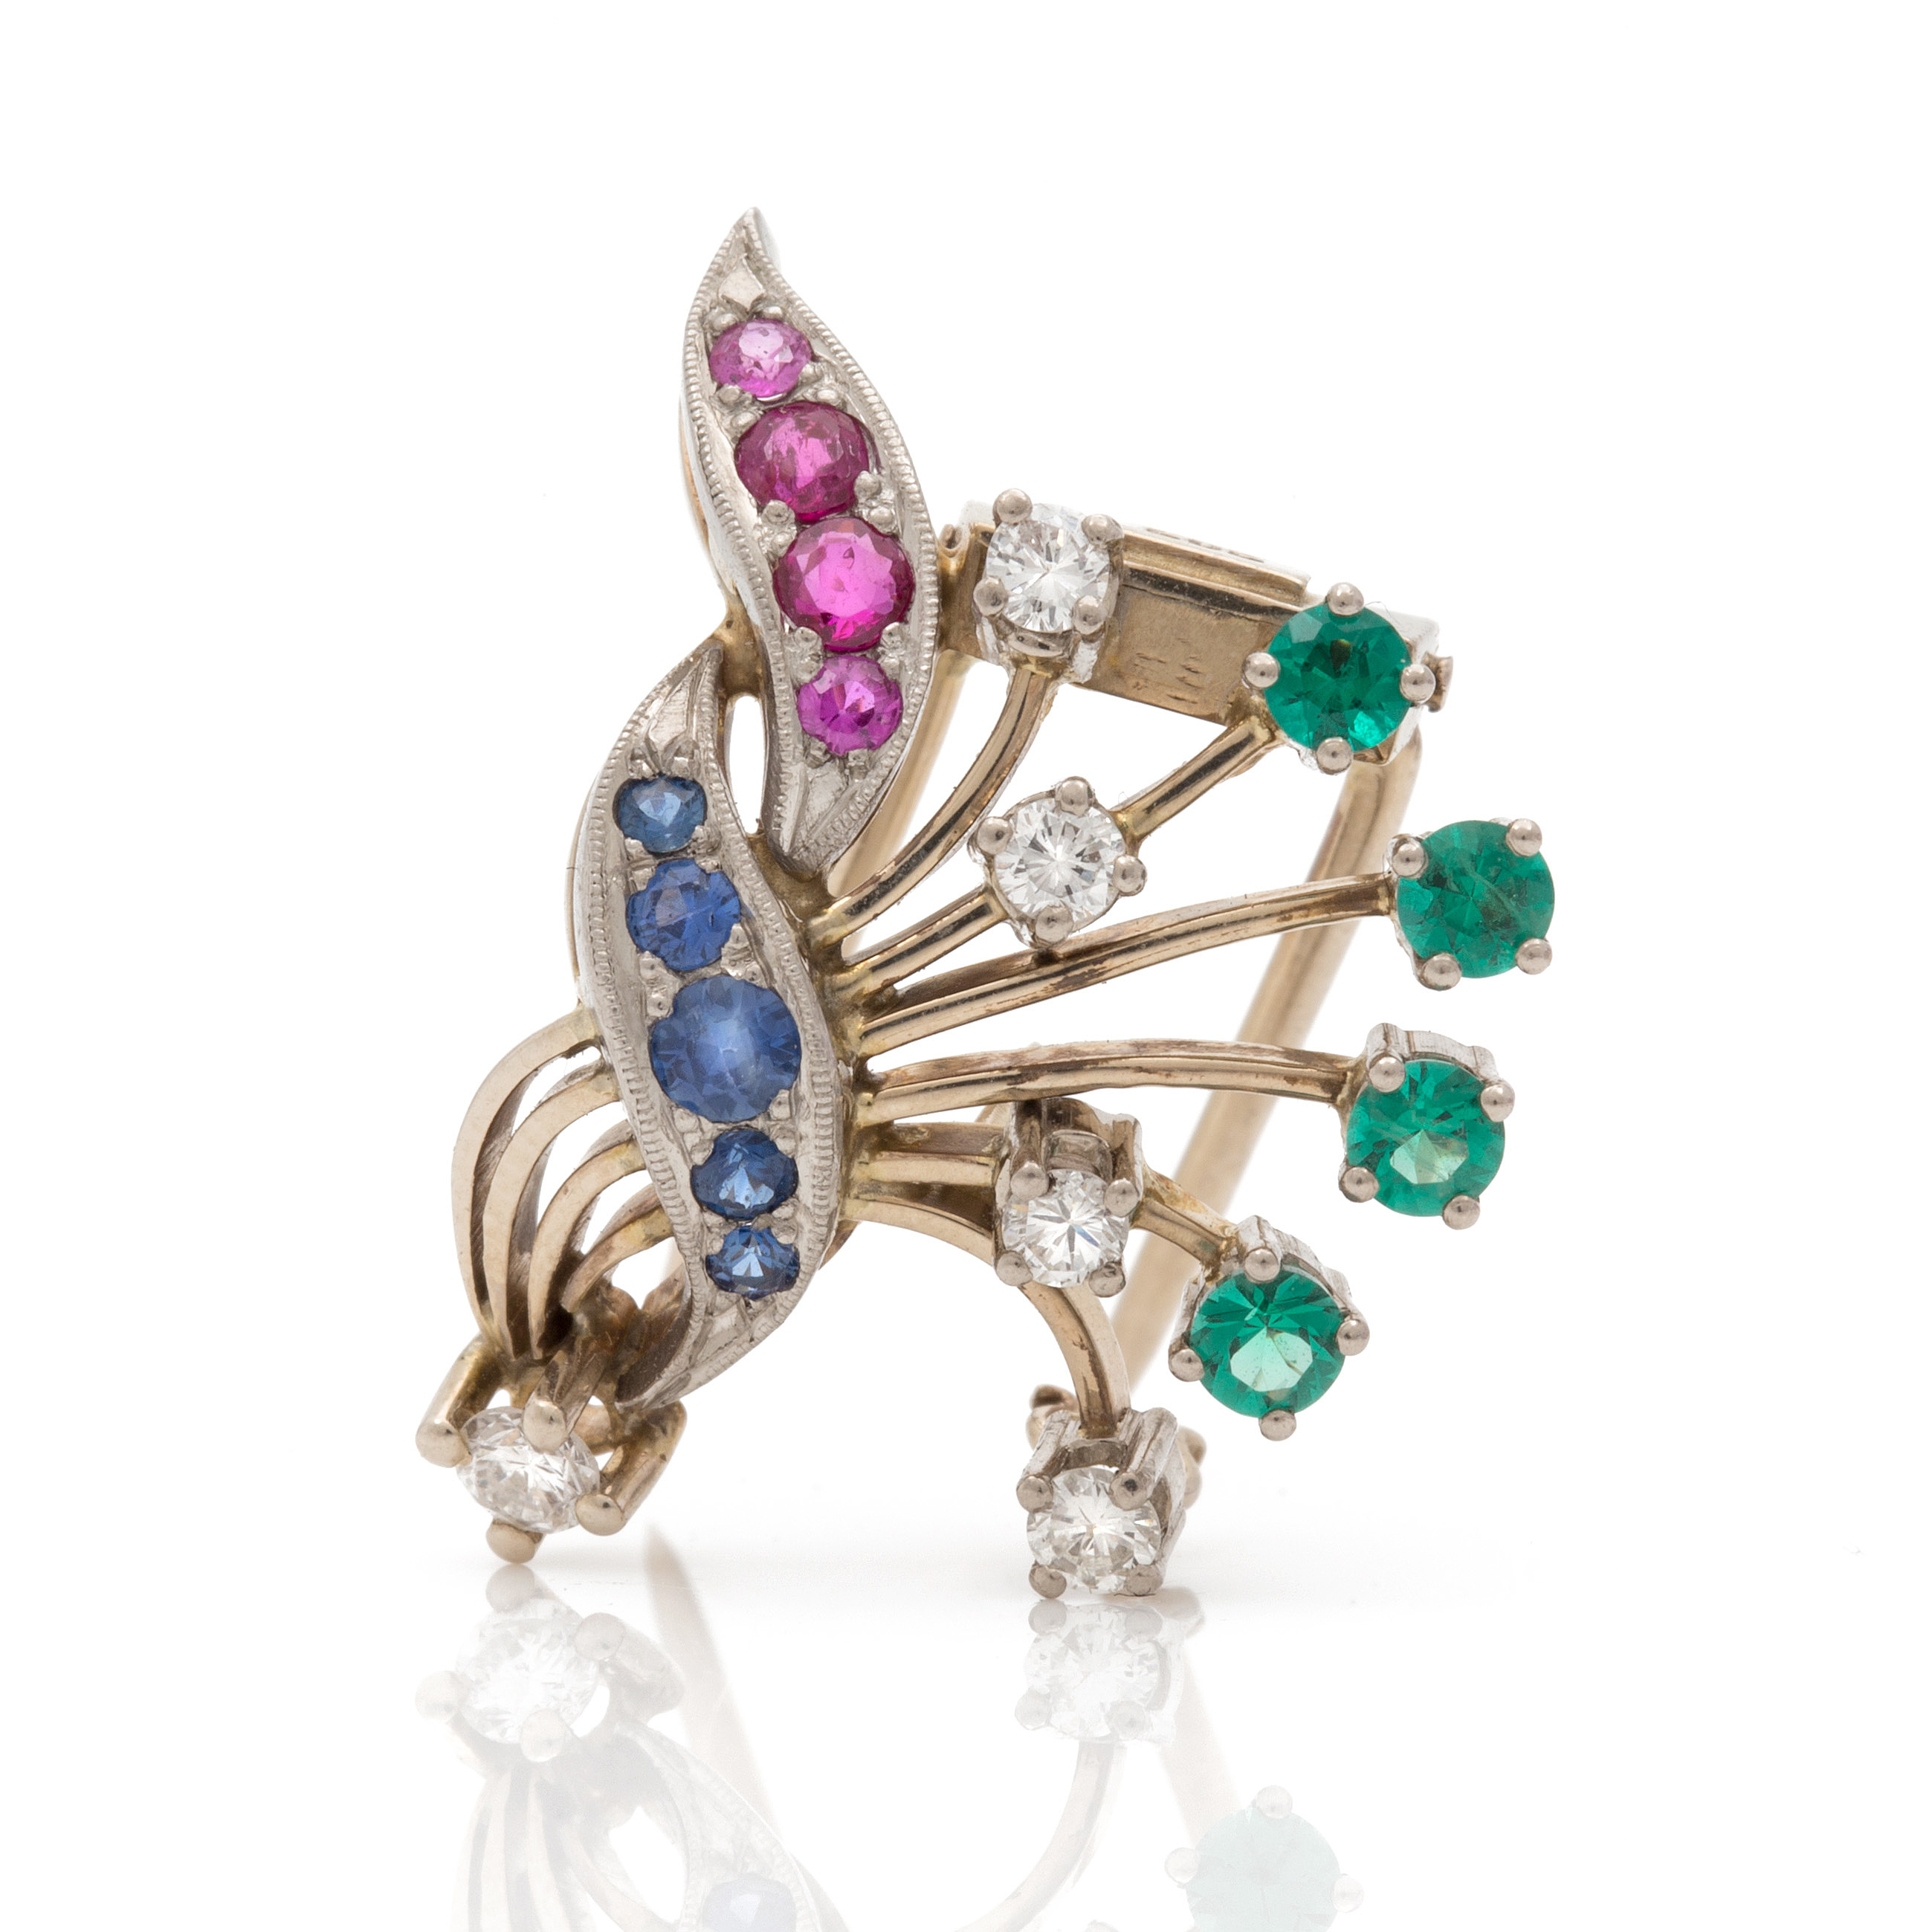 A clip brooch in the shape of a bouquet of flowers bukowskis izmirmasajfo